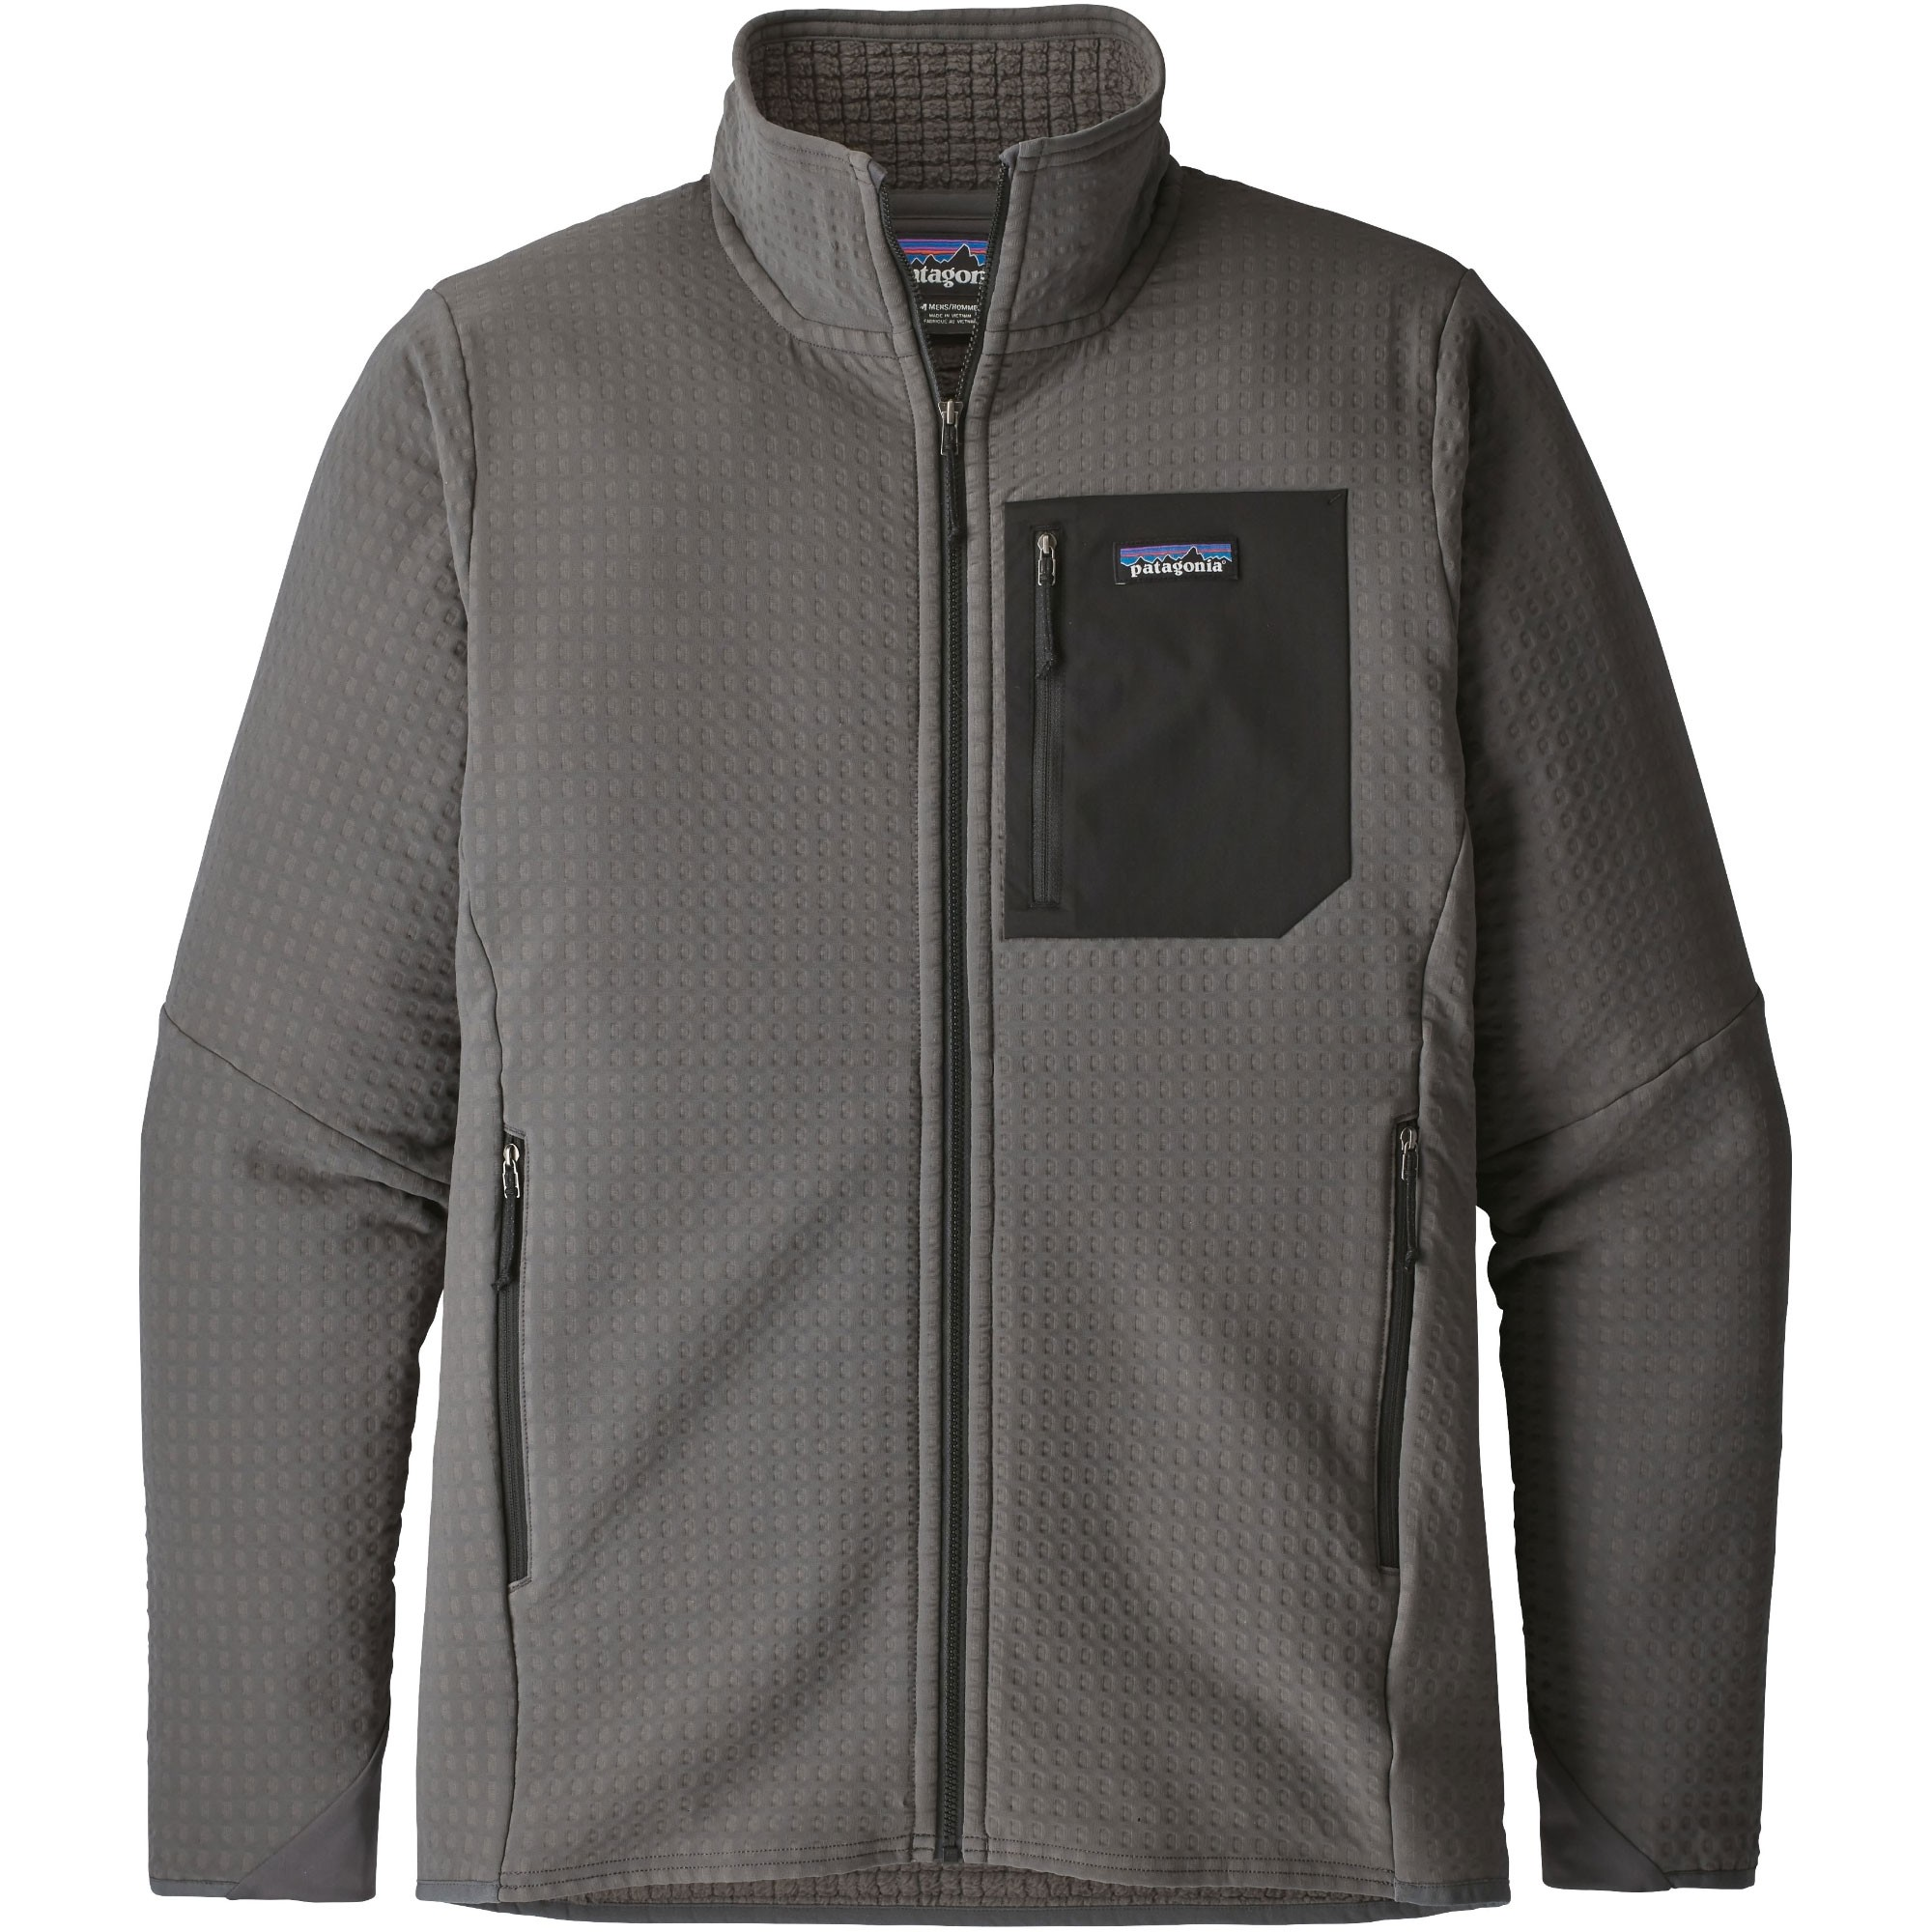 Patagonia R2 TechFace Jacket - Forge Grey